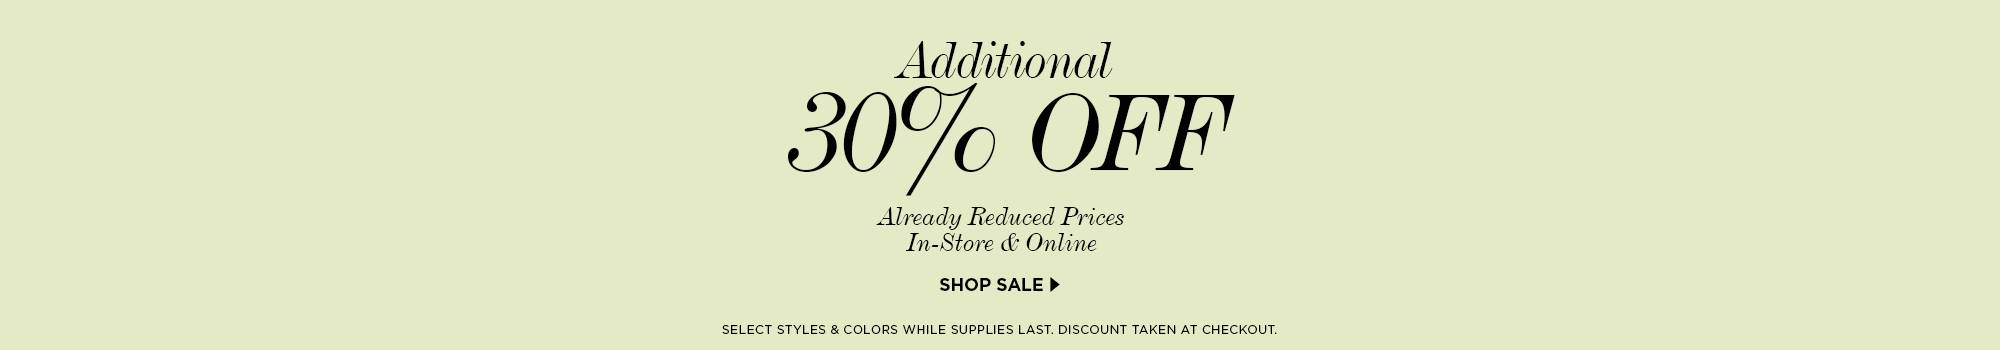 additional 30 off already reduced prices. In-store and online. click here to shop sale. select styles and colors while supplies last. discount taken at checkout.